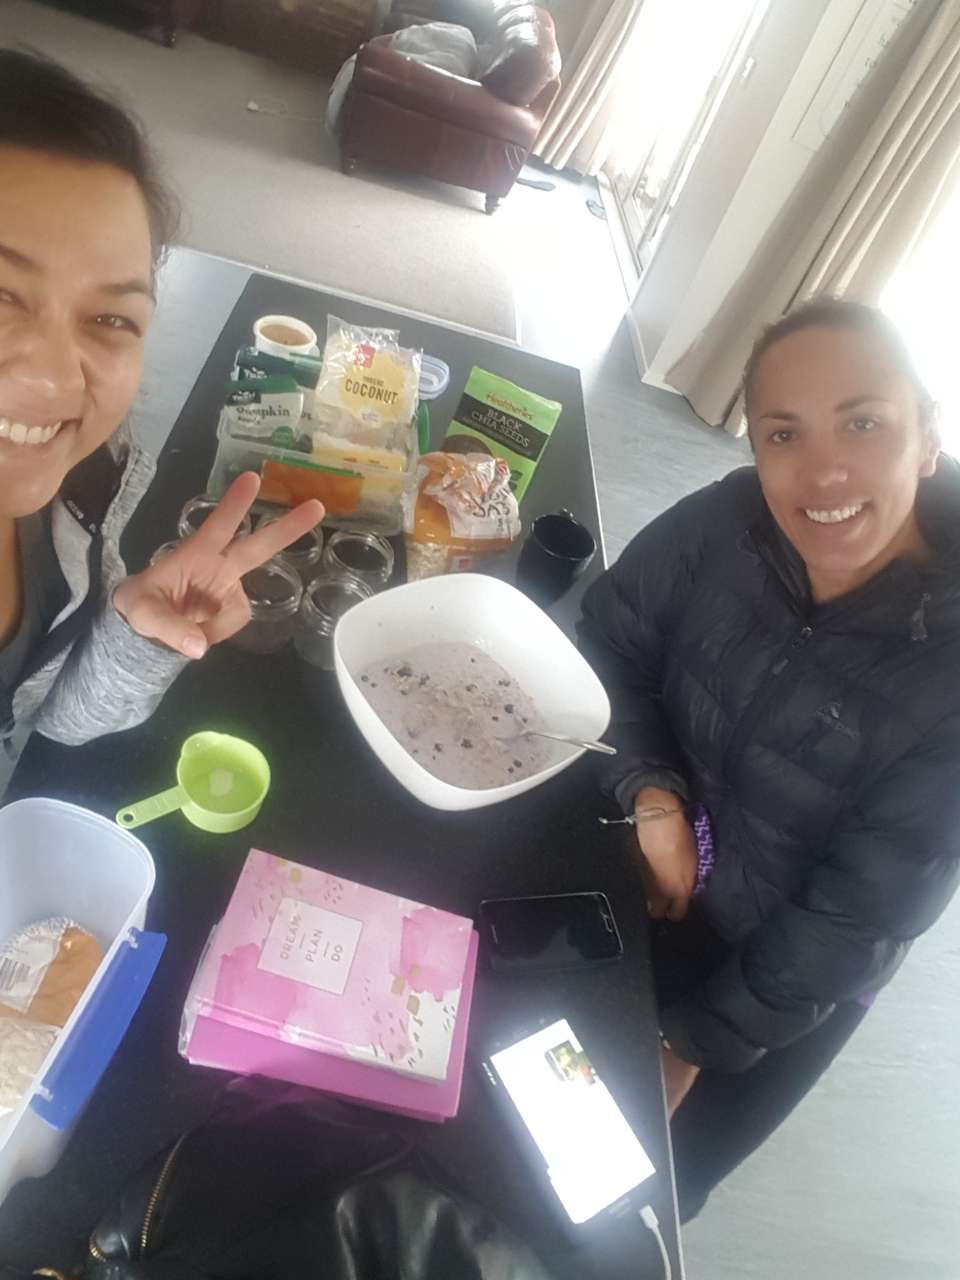 Activity completed: Nourish<br />Amount: Ate a nourishing breakfast<br /><br />Session 6 with Nani and we decided to make and eat oats because she couldn't make it on Friday! this wahine is well on her way to achieving the goals we set in our first session, she is motivated and positive and is making huge progress. <br />When we start to look after our tinana it affects every other area in a positive way and gives the strength and courage to do things we might not of if we were not in a good space physically. <br />As always the mahi never ends and nani has become a part of the strong group we have formed!   #activityNourish